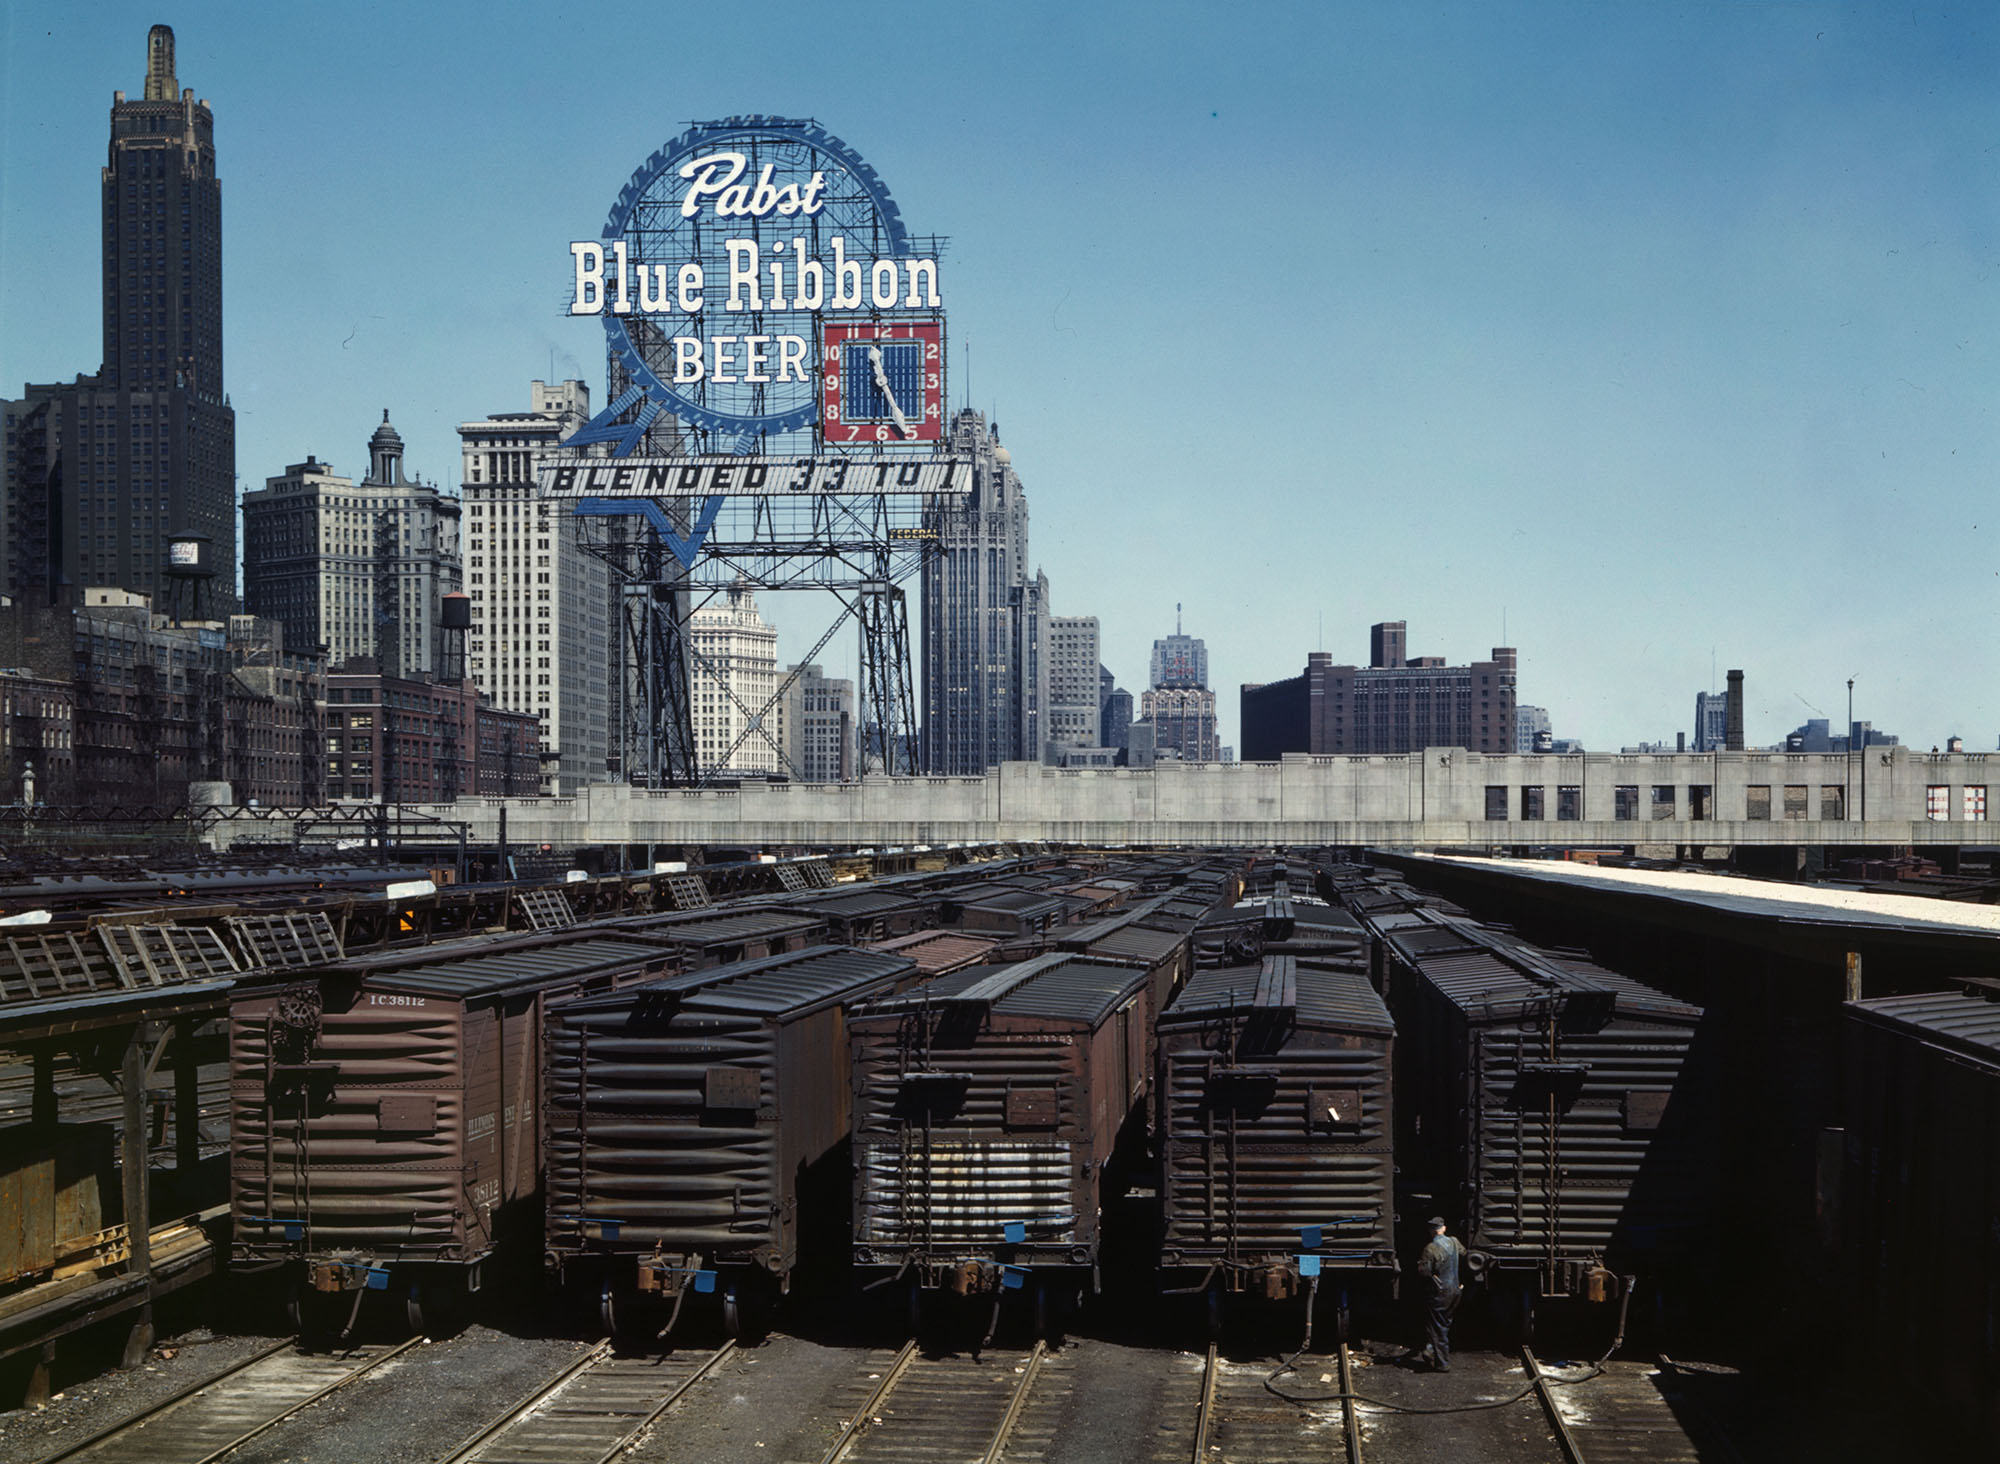 Color Photos of Chicago\'s Rail Yards in the 1940s - The Atlantic